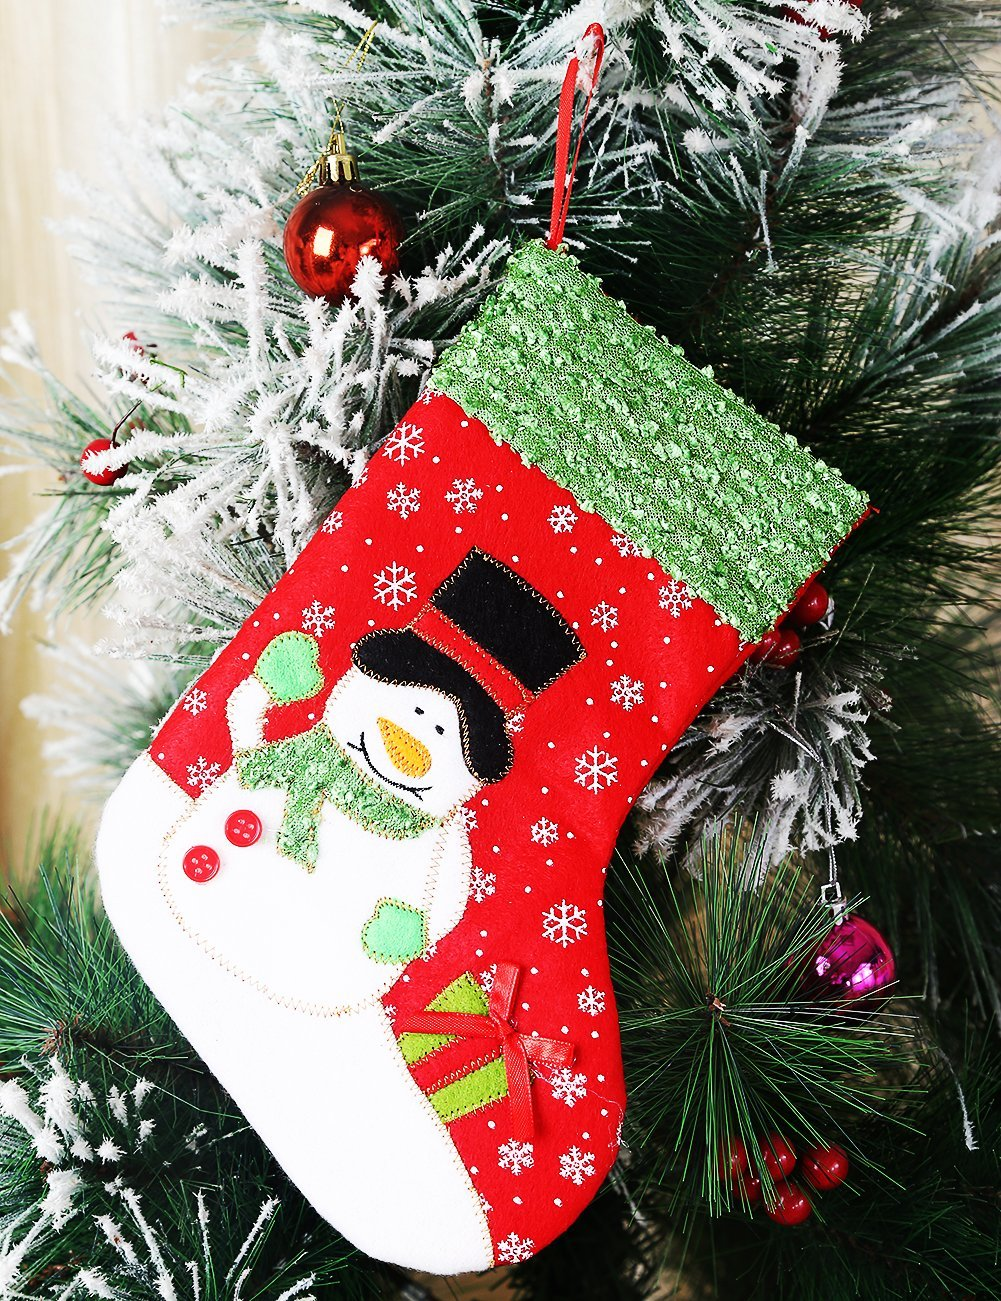 head over to amazon and save an extra 75 off on this snowman design christmas stockings pay only 1 when you use promo code w4q7zg7x at checkout - Amazon Christmas Stockings